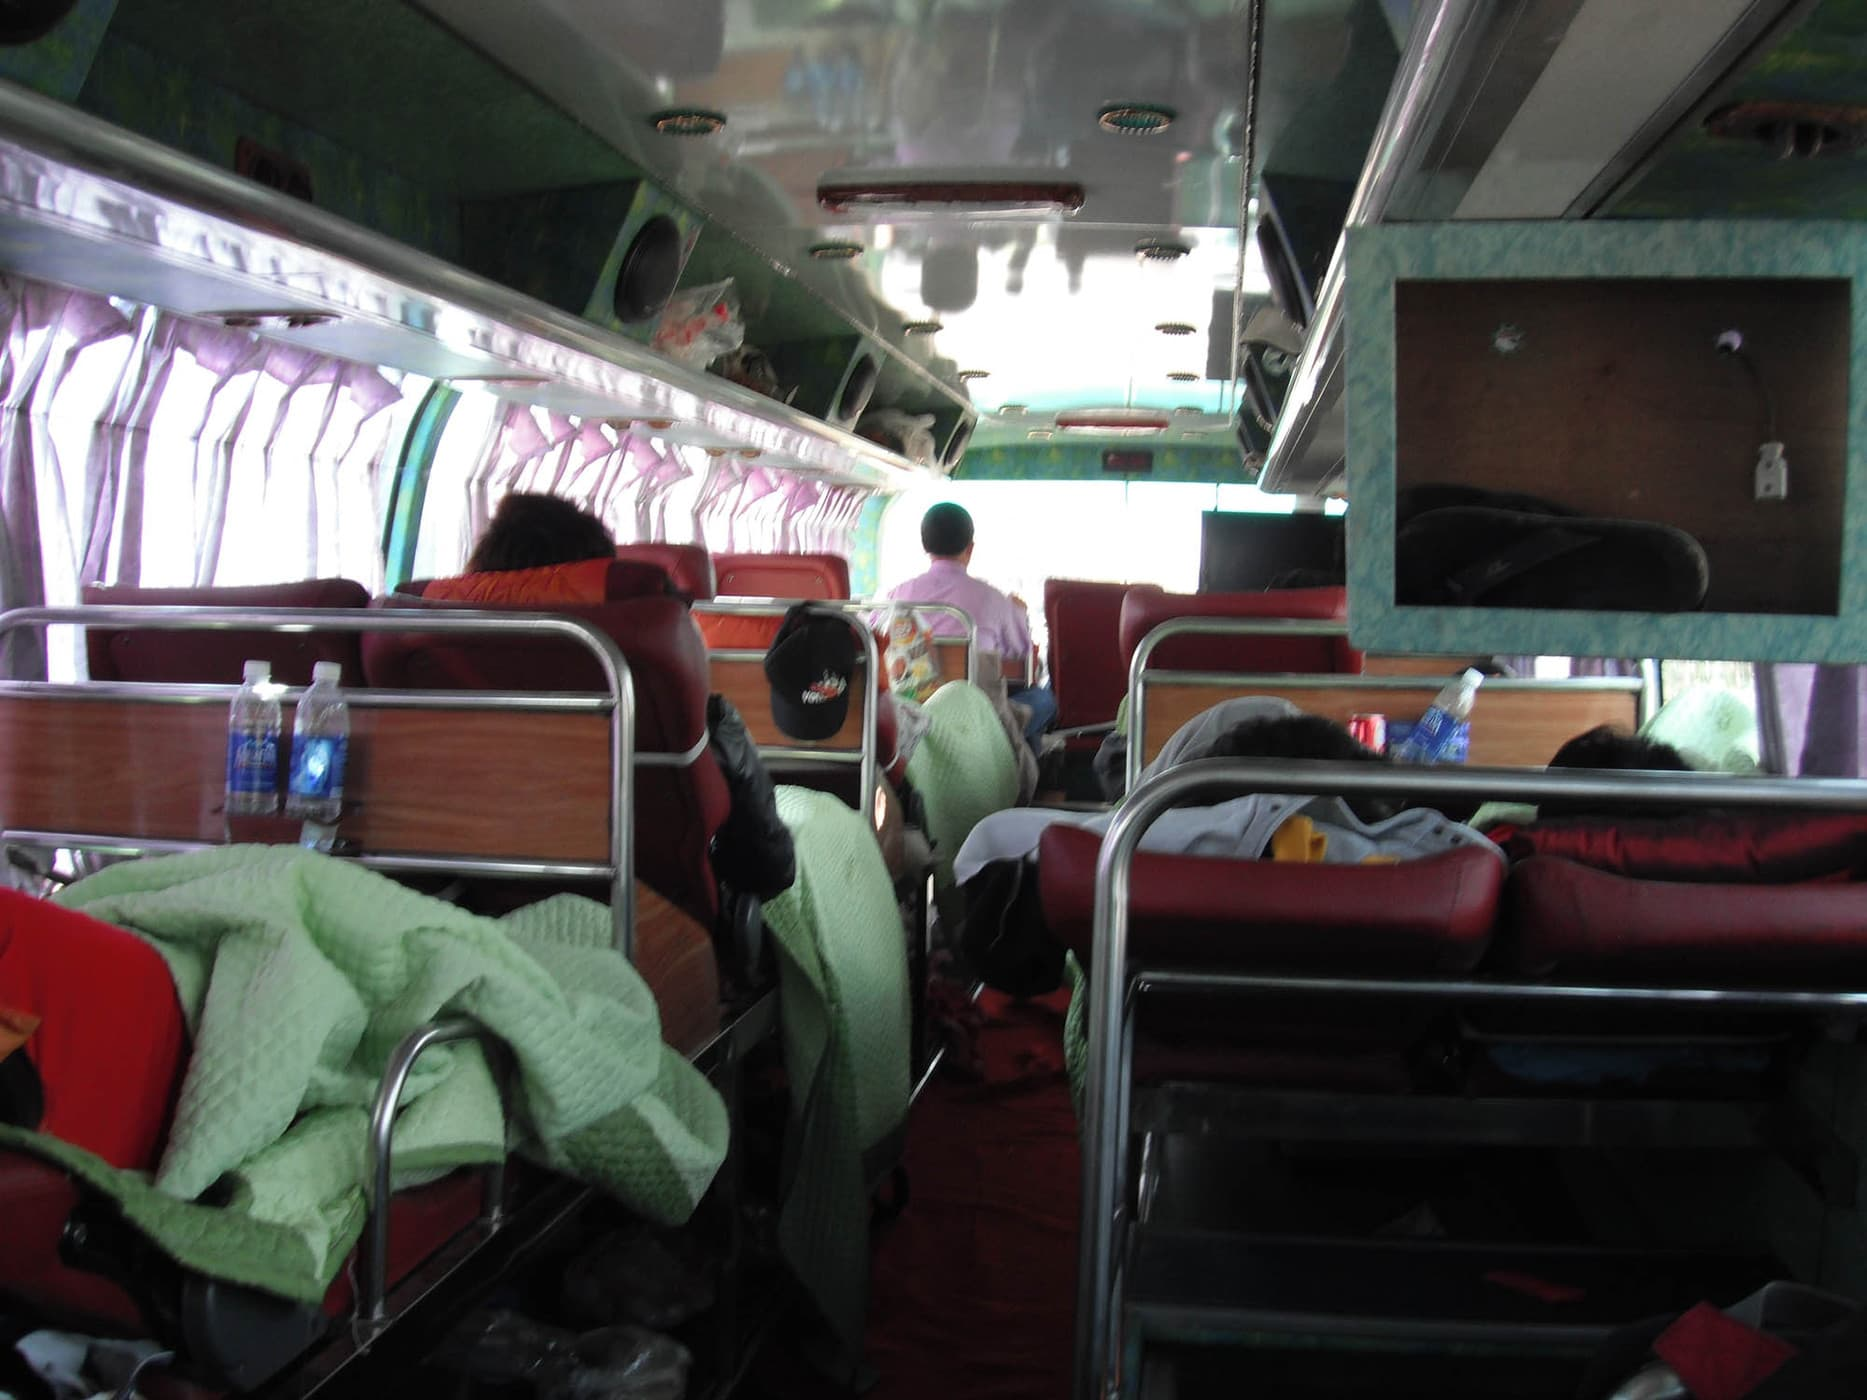 The 23-hour bus between Hanoi, Vietnam and Vientiane, Laos.